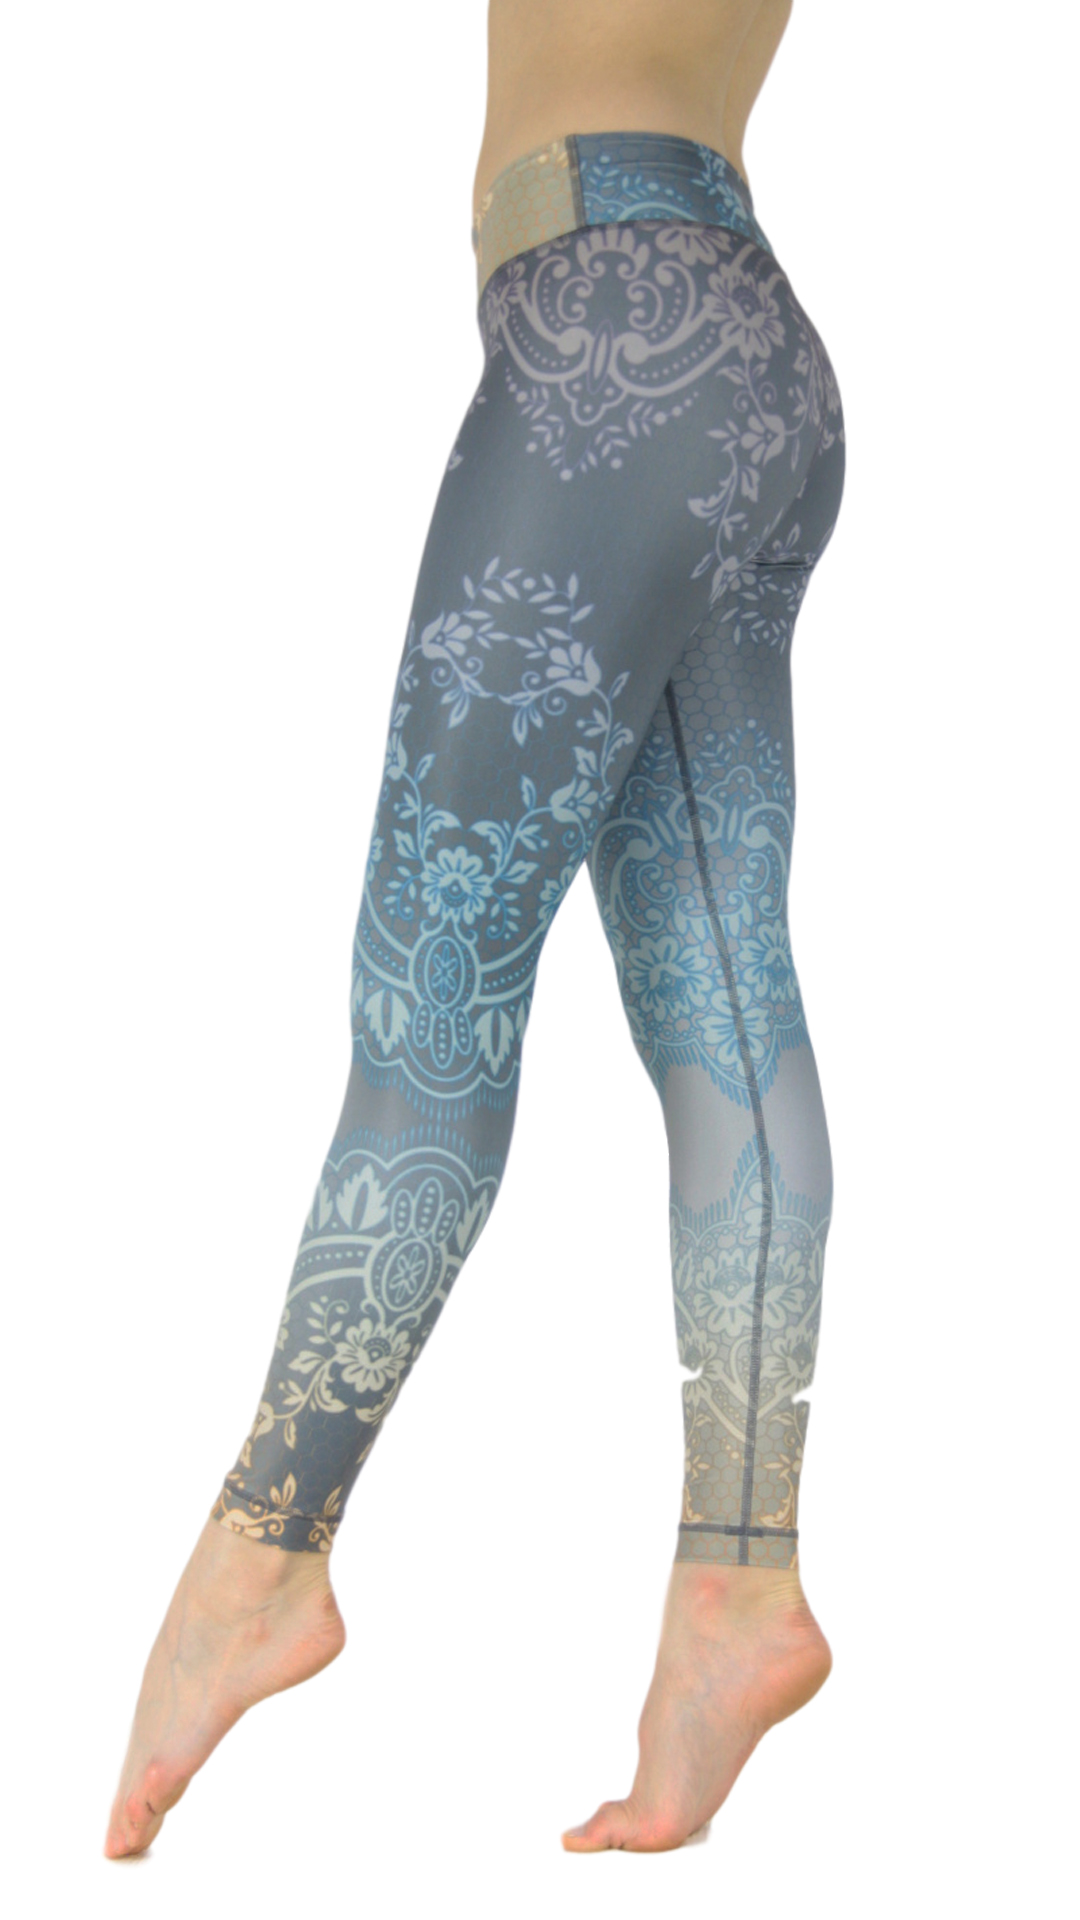 "Yoga-Leggings ""Golden Girl"""